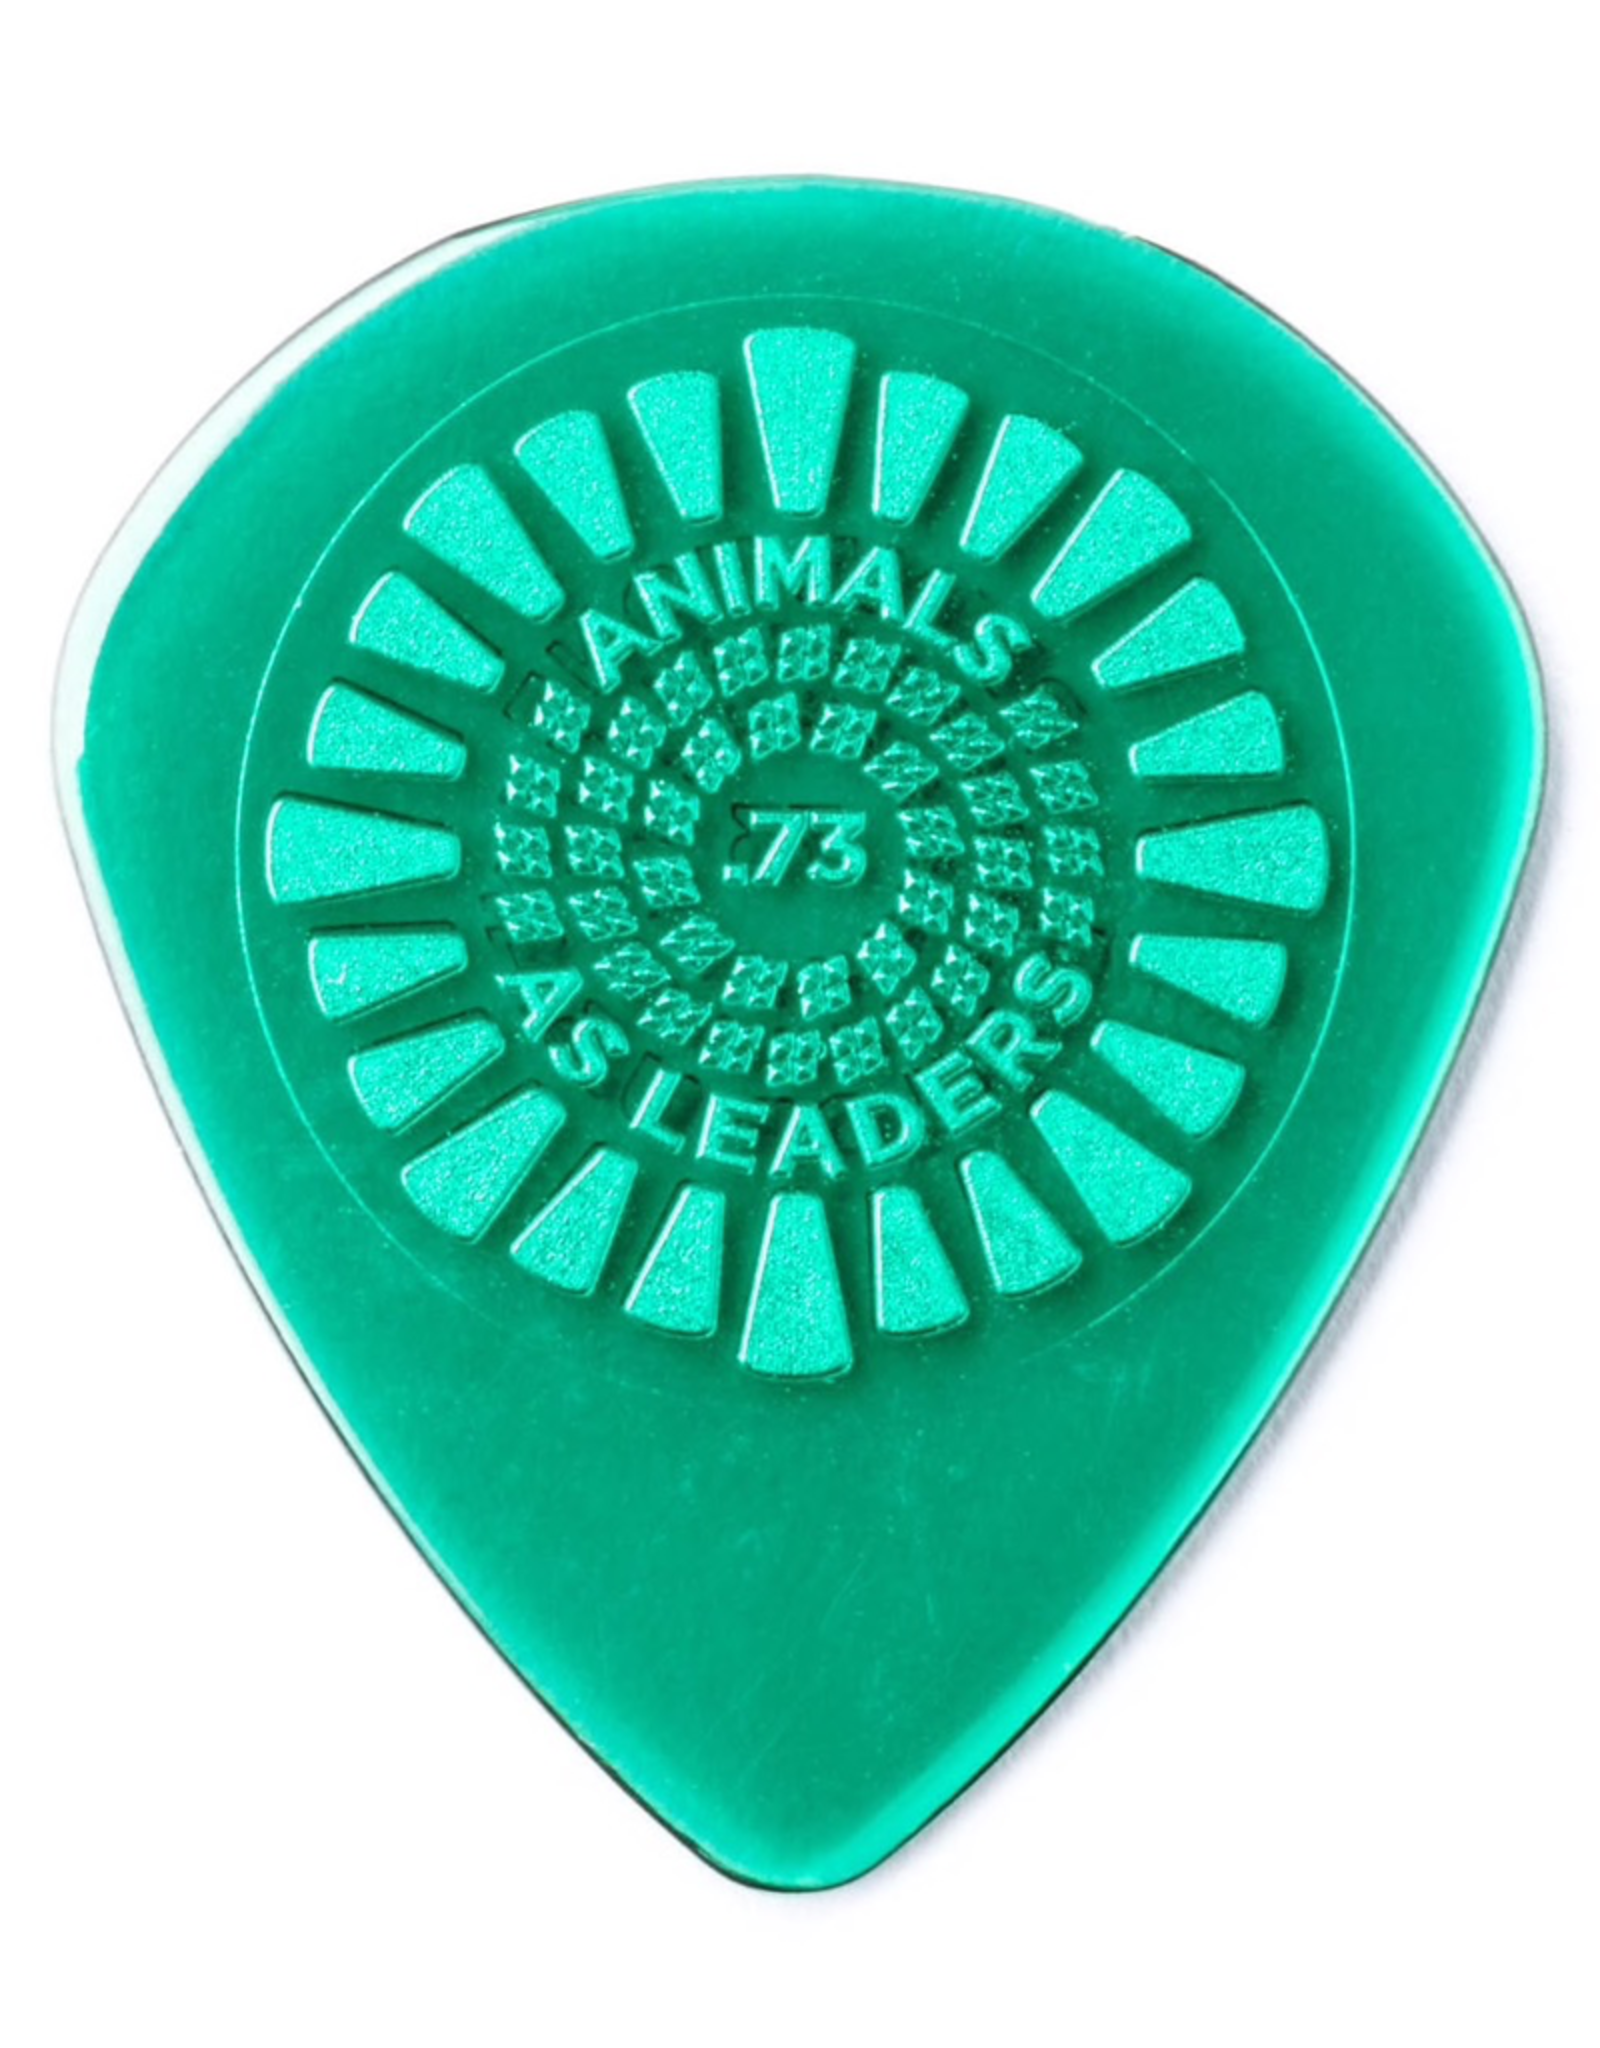 Dunlop Dunlop Animals As Leaders Primetone, .73mm, Green, 3/Player's Pack